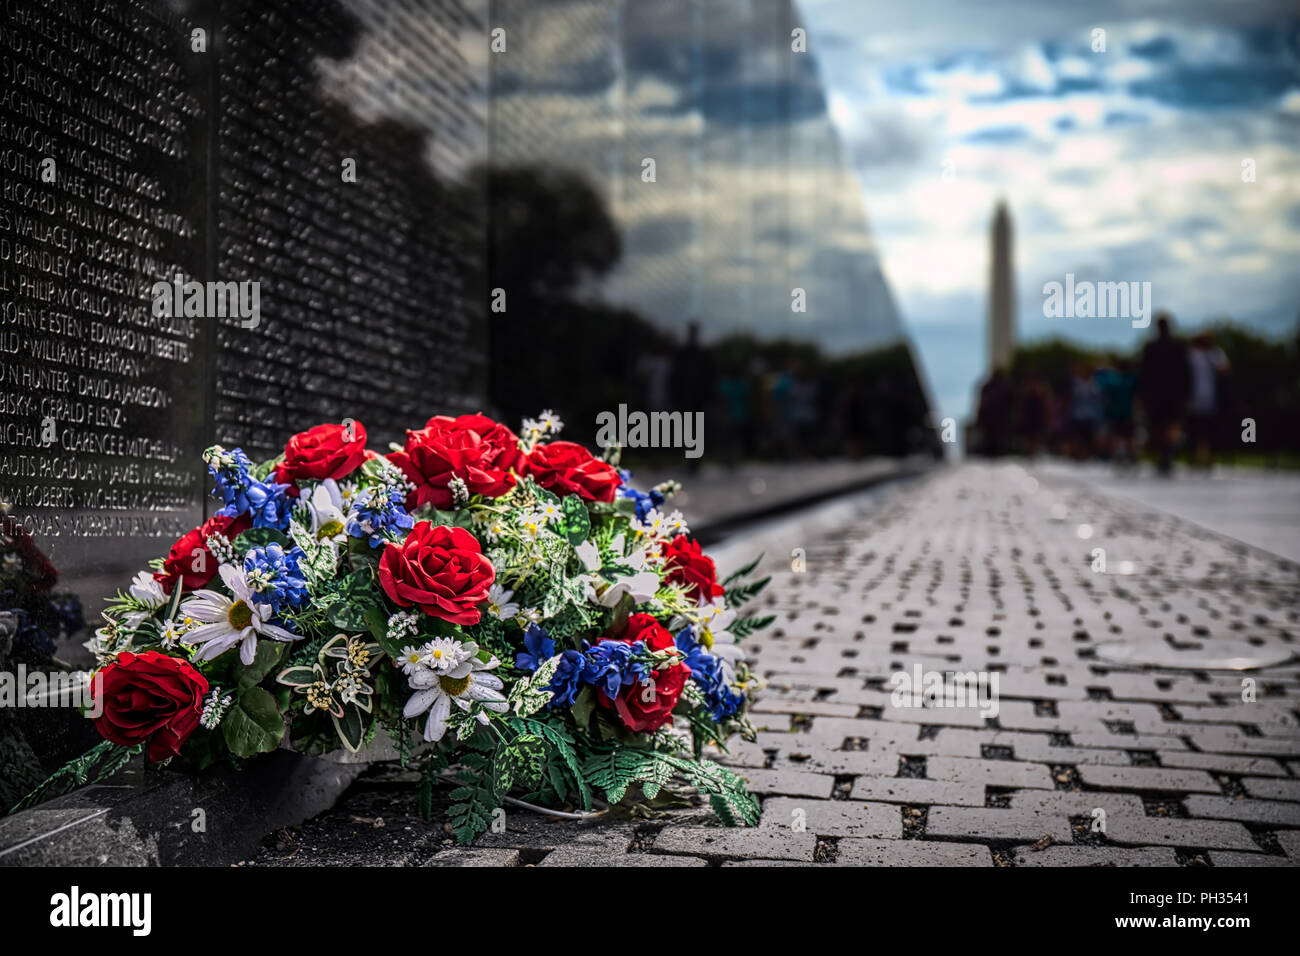 Blumen gegen den Vietnam Veterans Memorial in Washington, DC. Stockbild